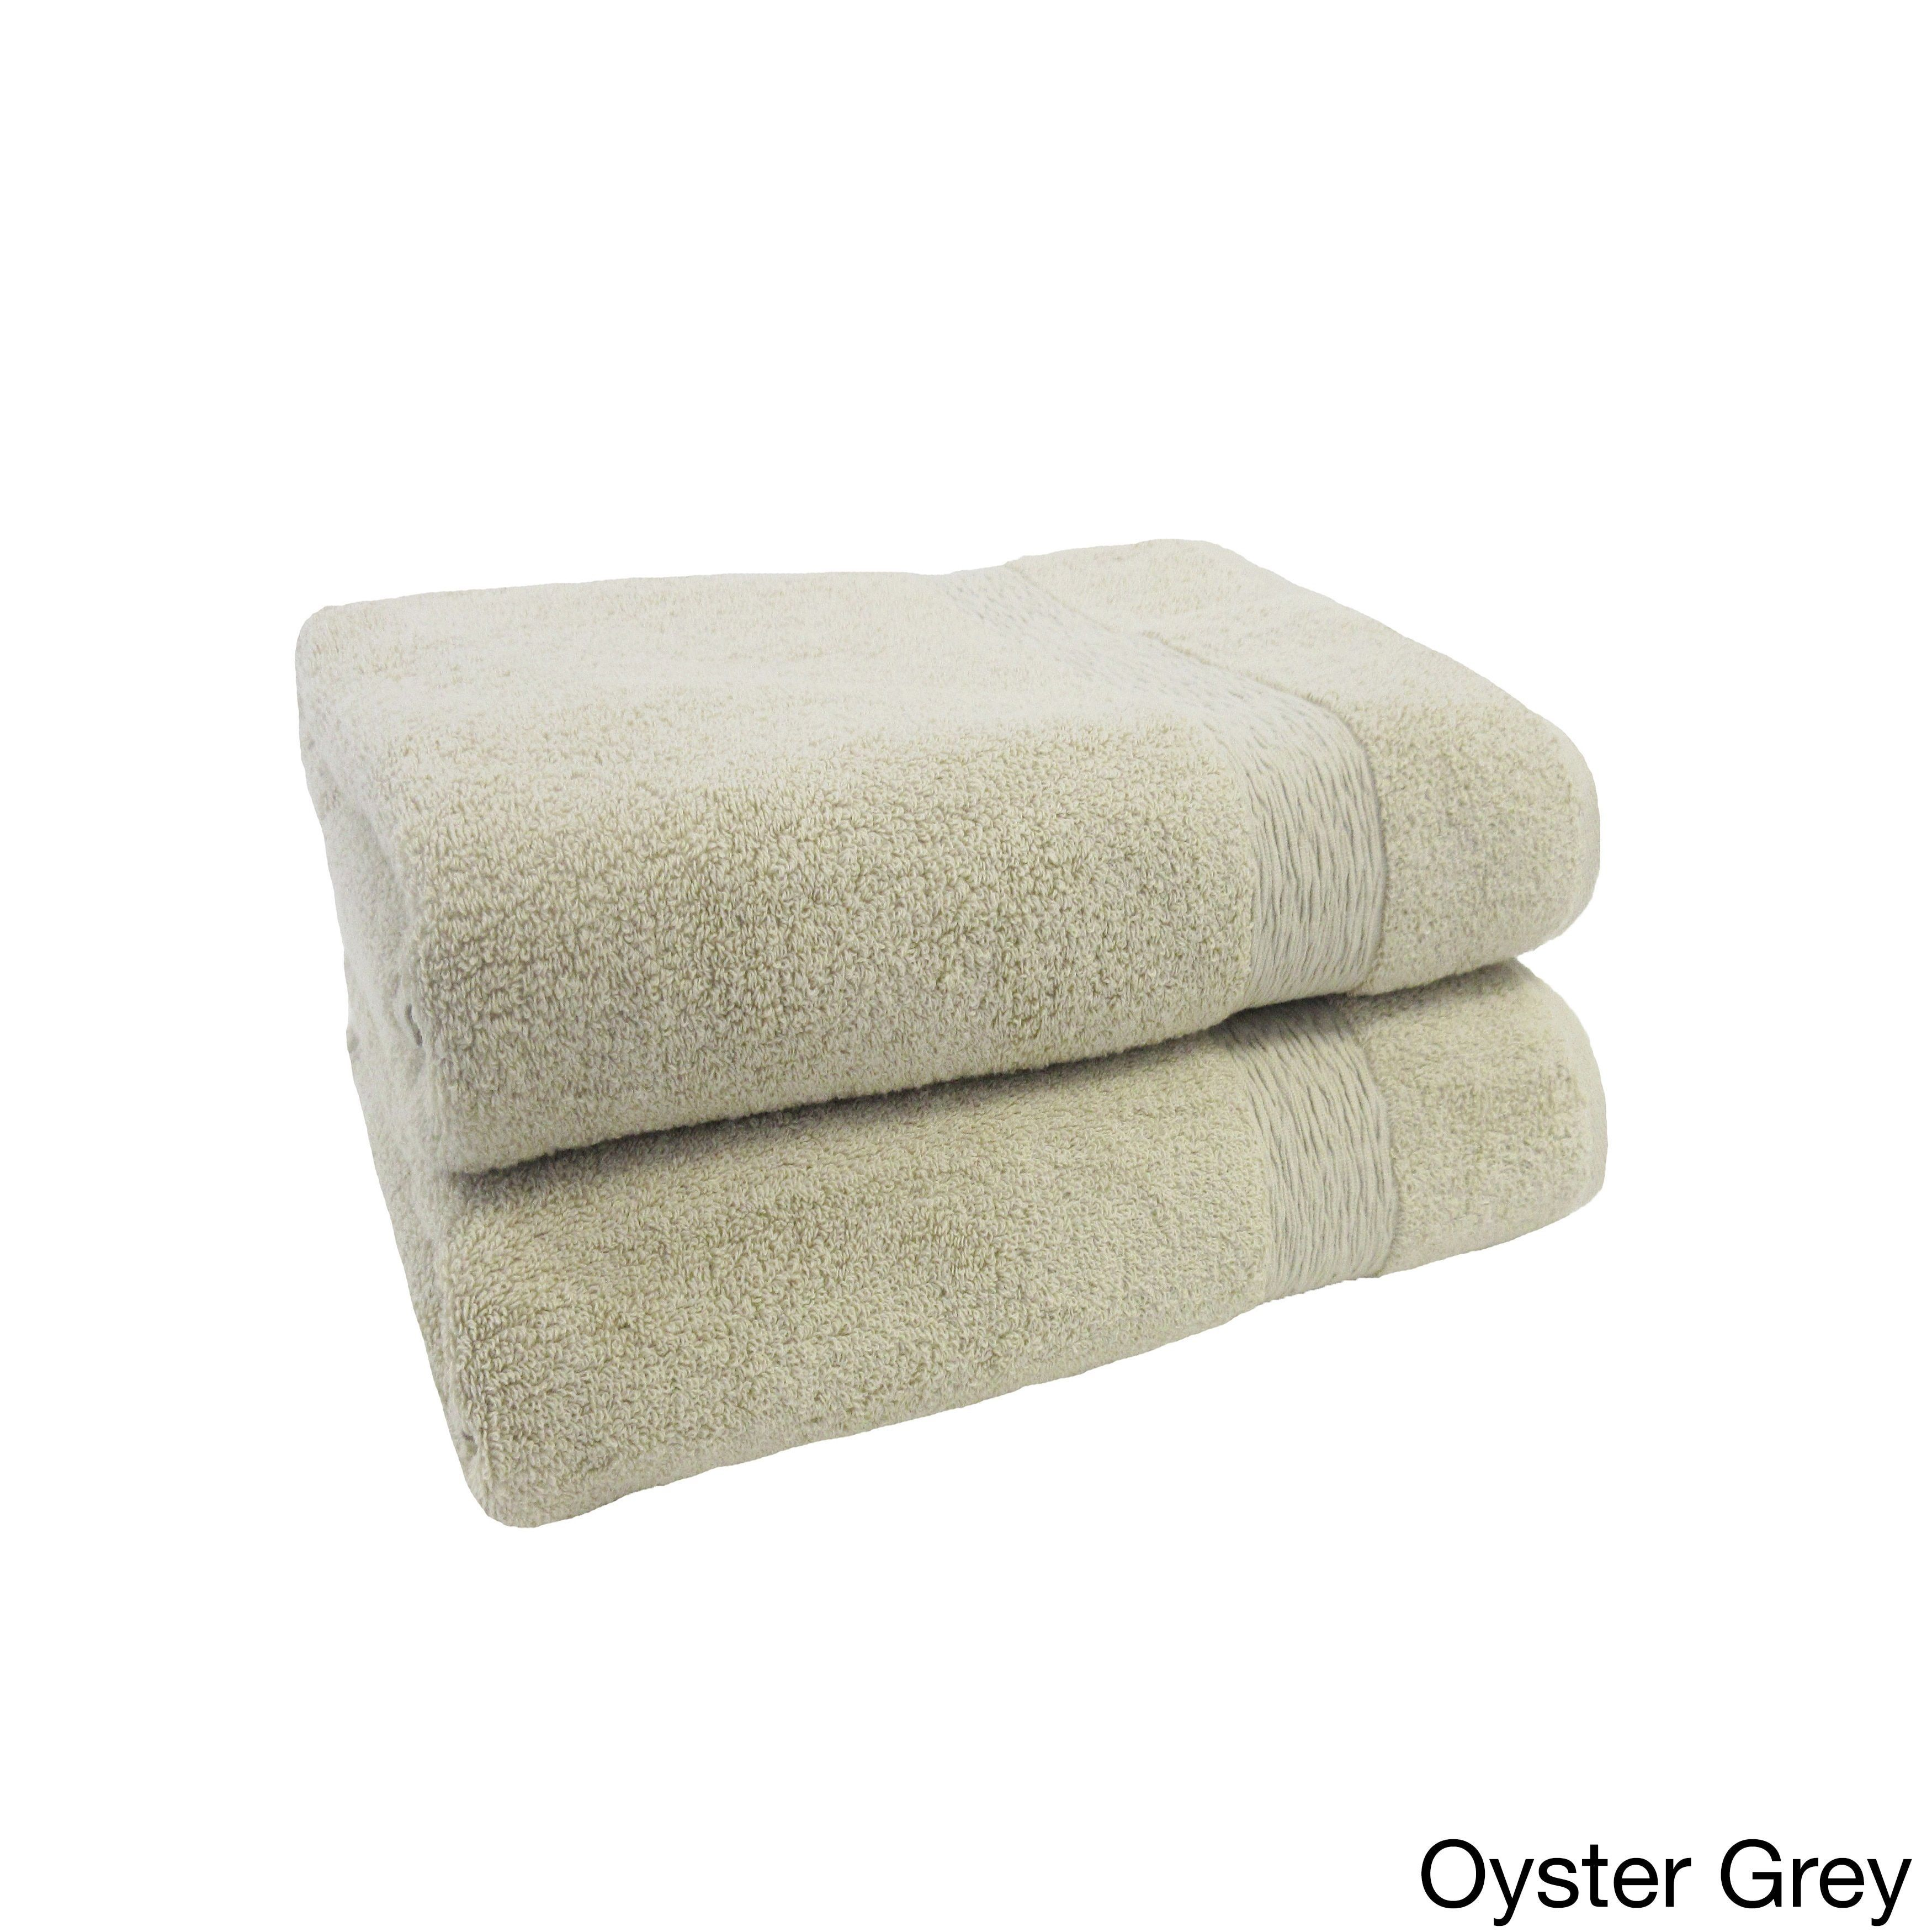 10bc7a43c71d Signature Collection Ringspun Bath Towel (set of 2) from Jessica Simpson  (Oyster Grey)